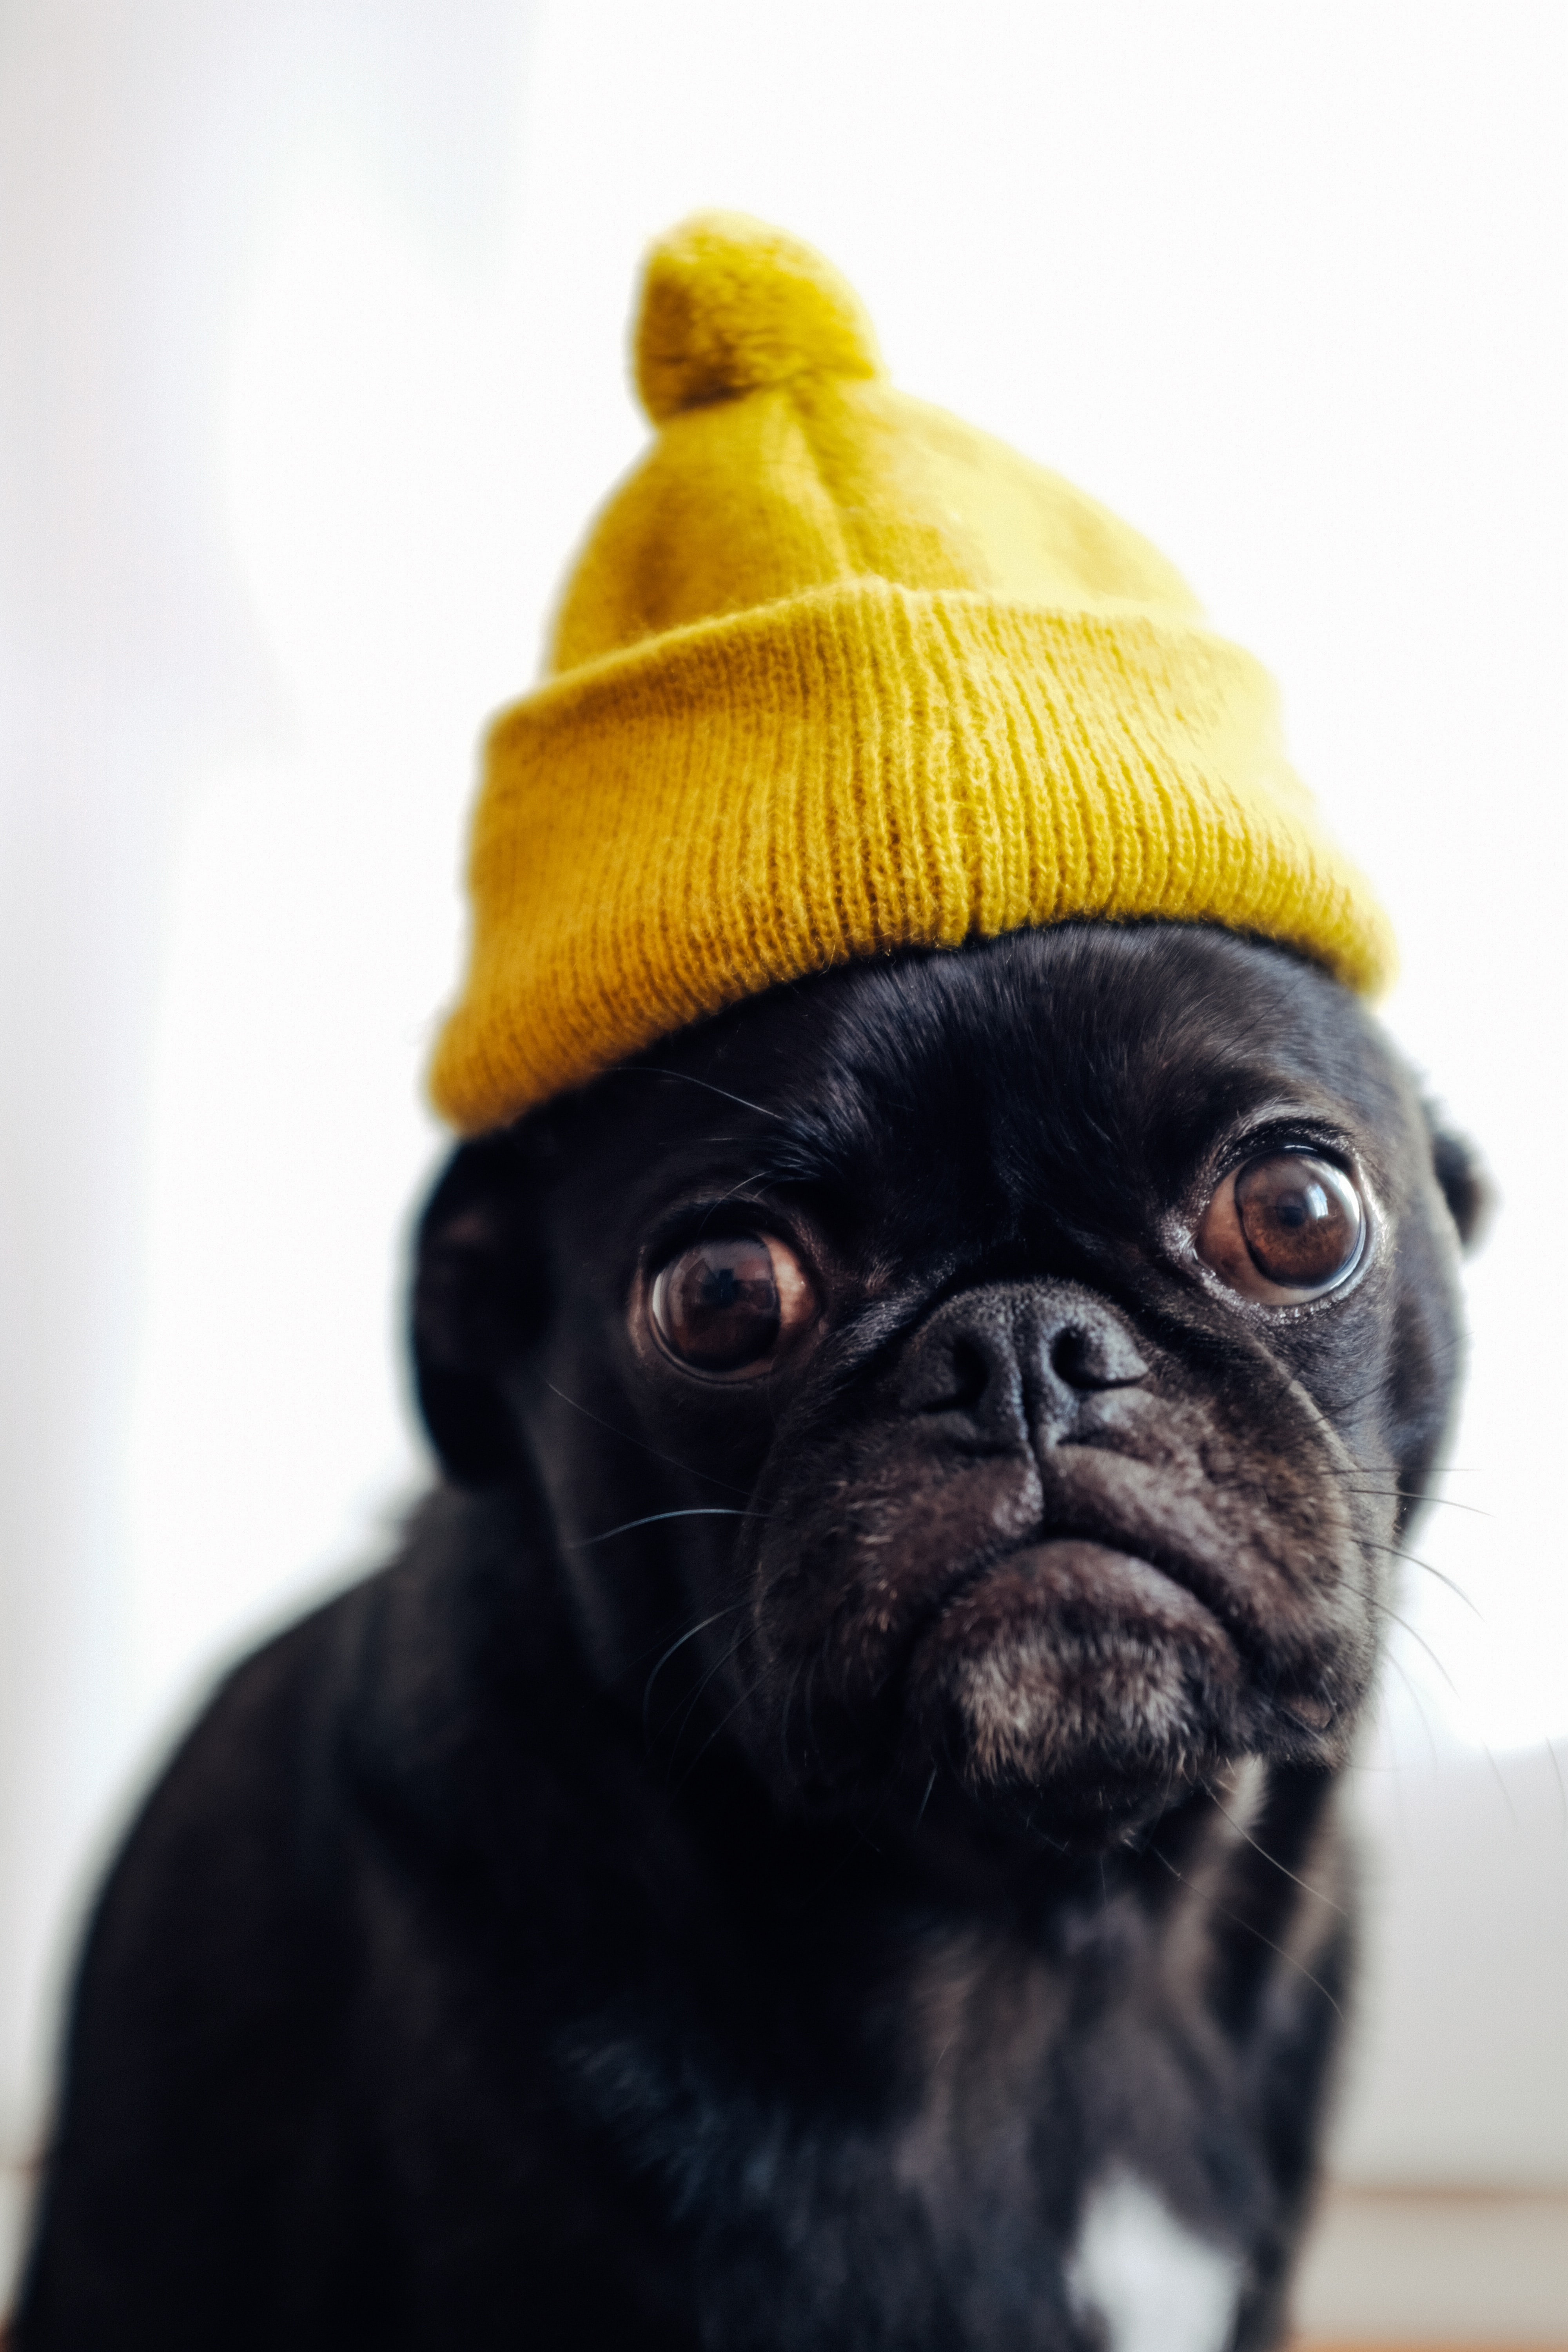 52455 download wallpaper Animals, Pug, Dog, Cap, Pet, Funny screensavers and pictures for free